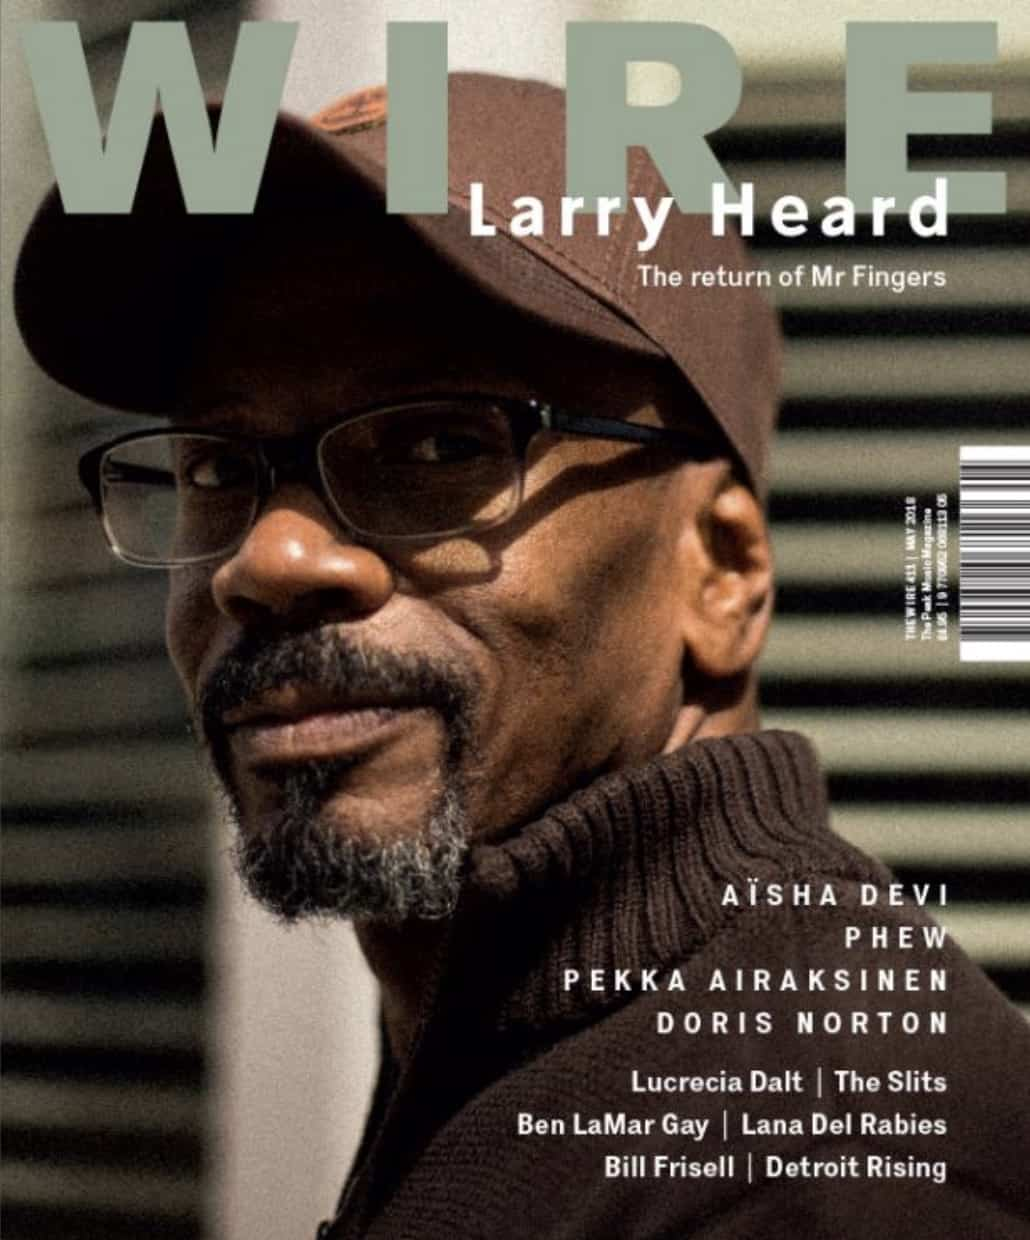 The Divine Abstract Reviewed in The Wire Magazine